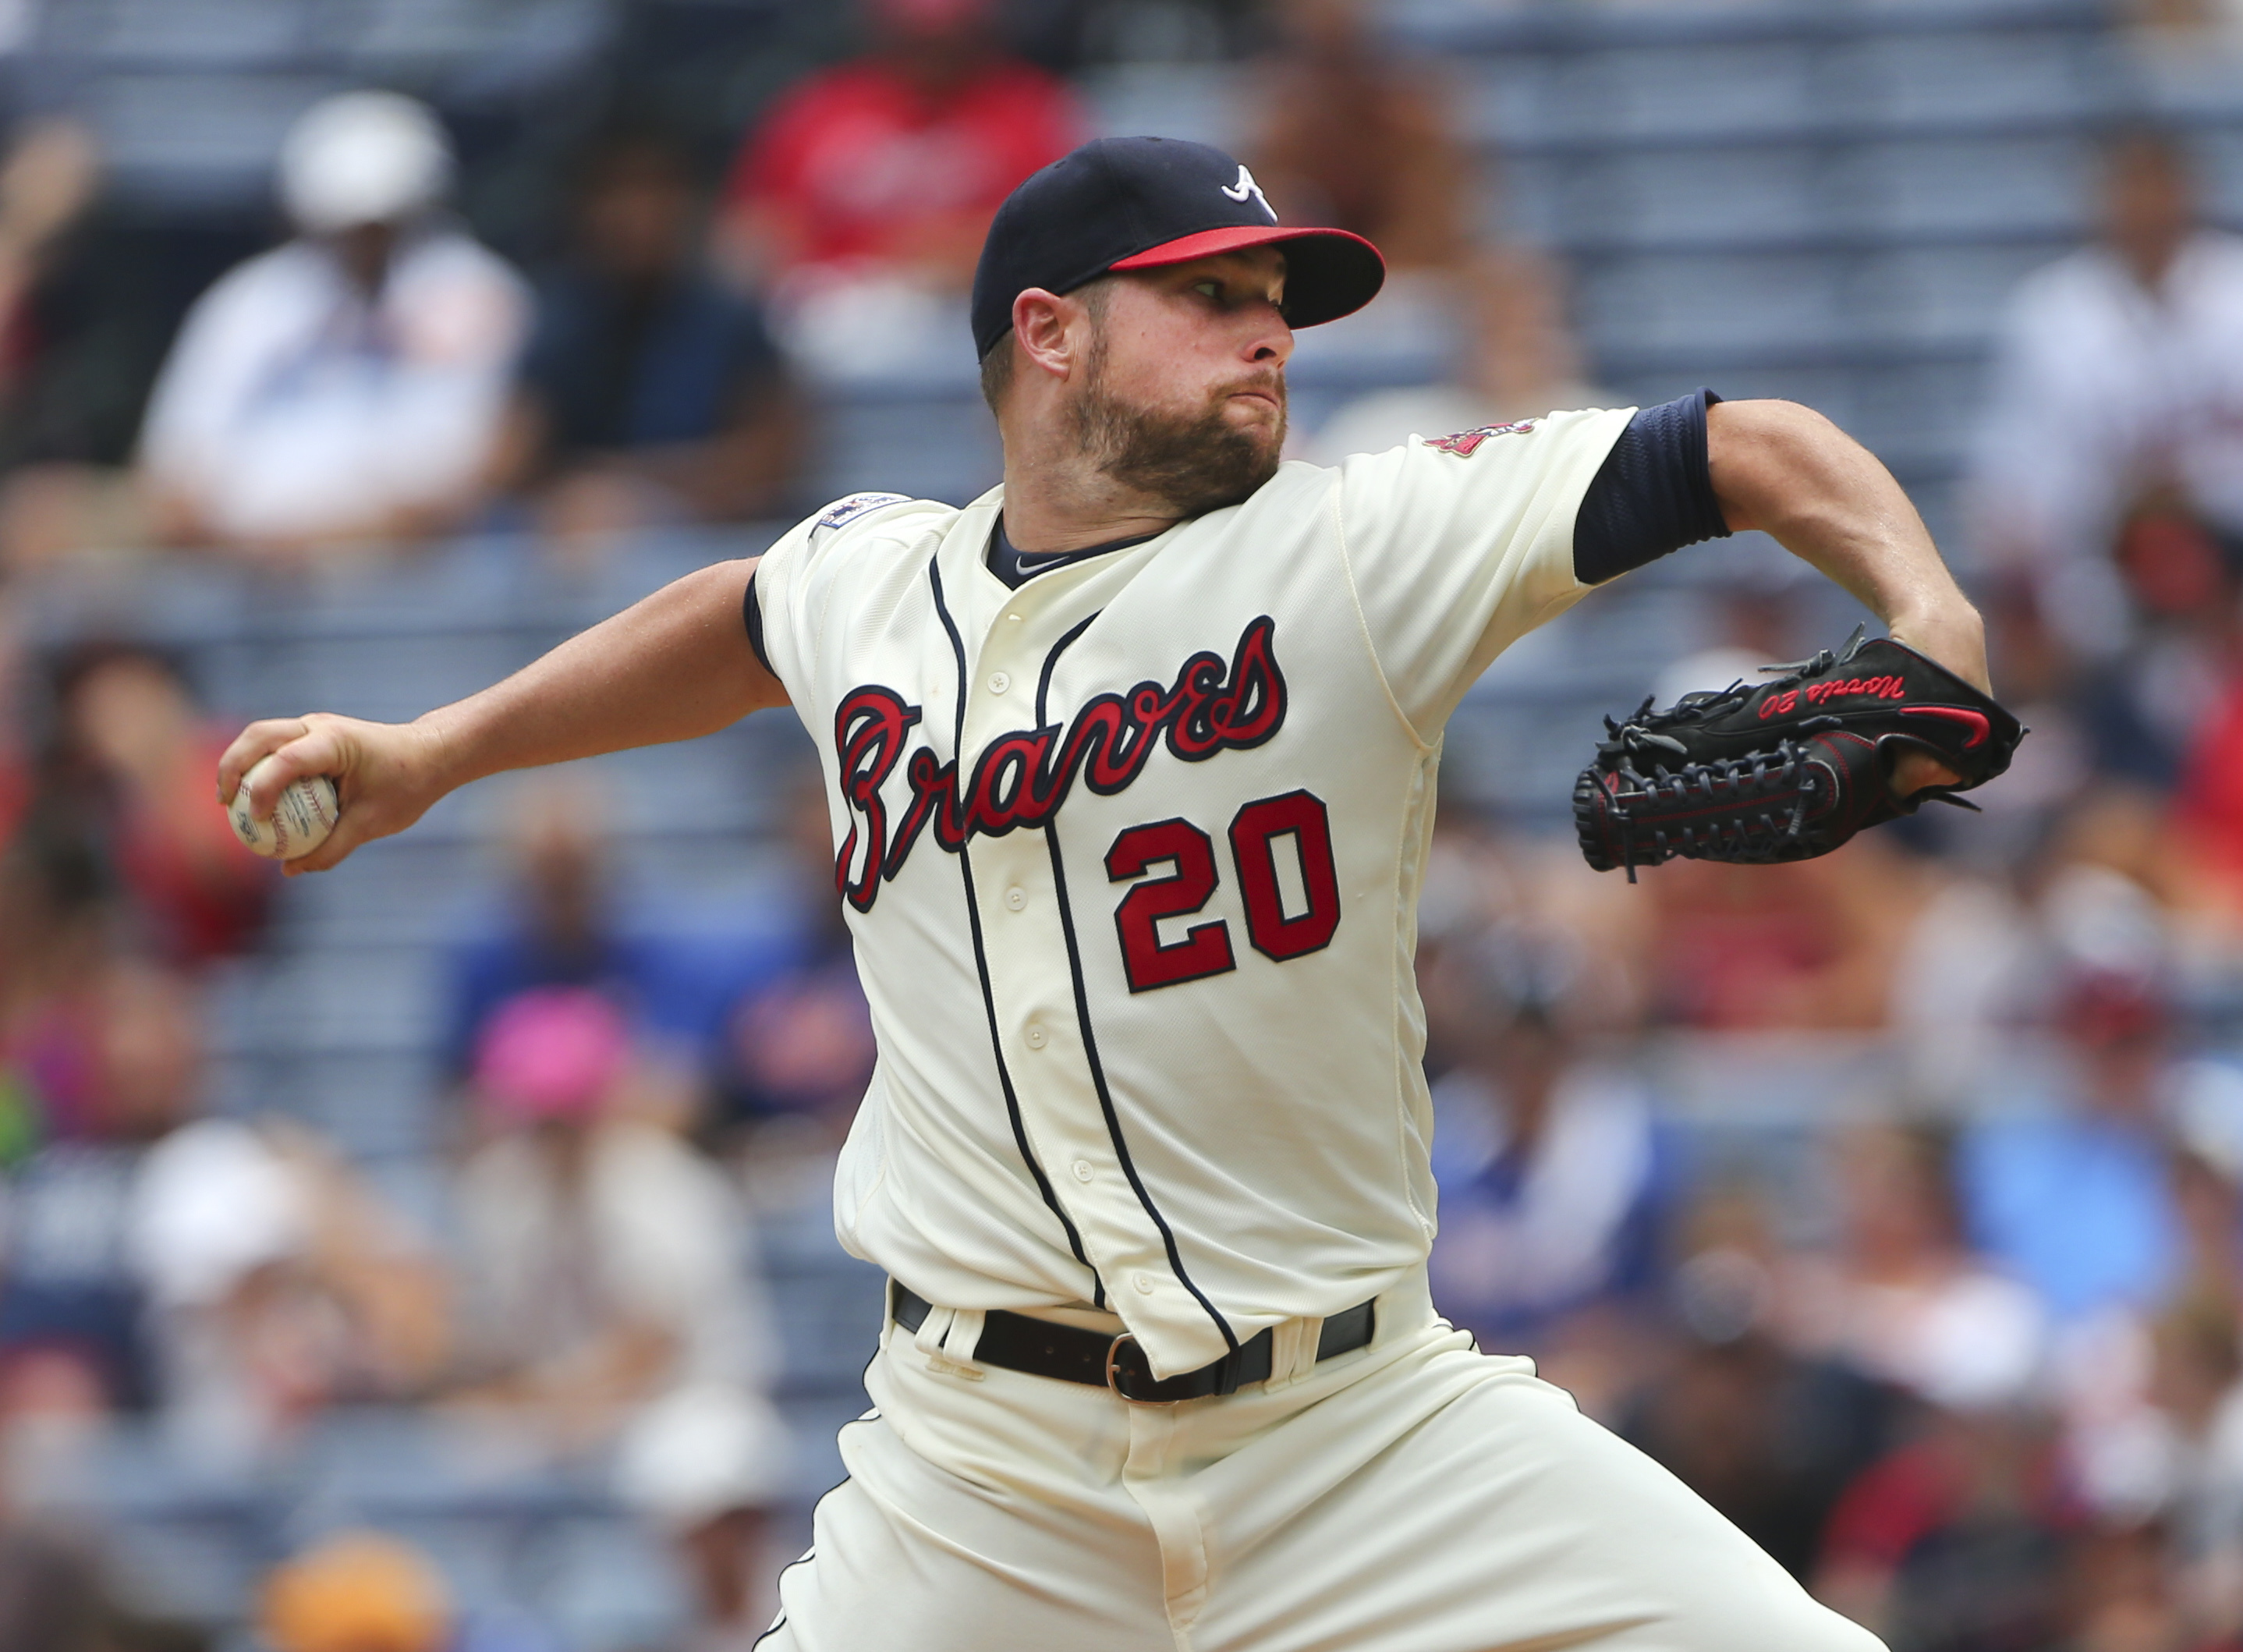 Atlanta Braves starting pitcher Bud Norris (20) delivers a pitch to a New York Mets batter in the first inning of a baseball game Sunday, June 26, 2016, in Atlanta. (AP Photo/John Bazemore)